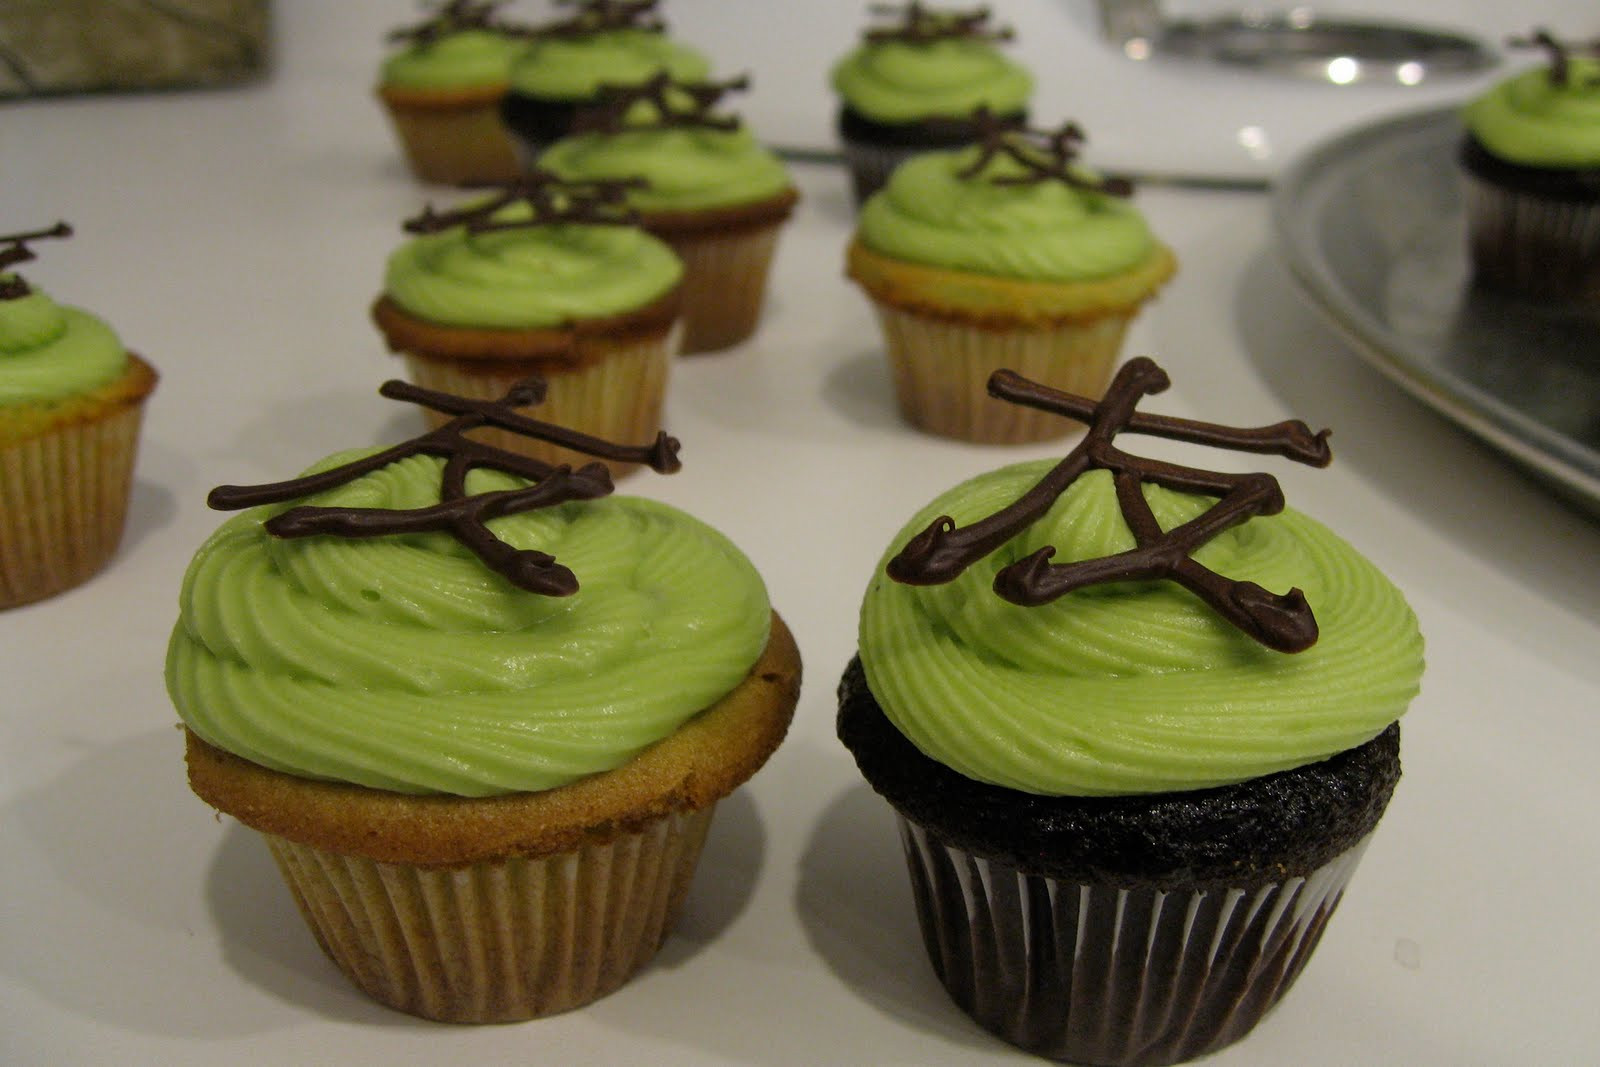 Green Tea Cupcakes  Sugar Swings Serve Some mini chocolate & green tea cupcakes